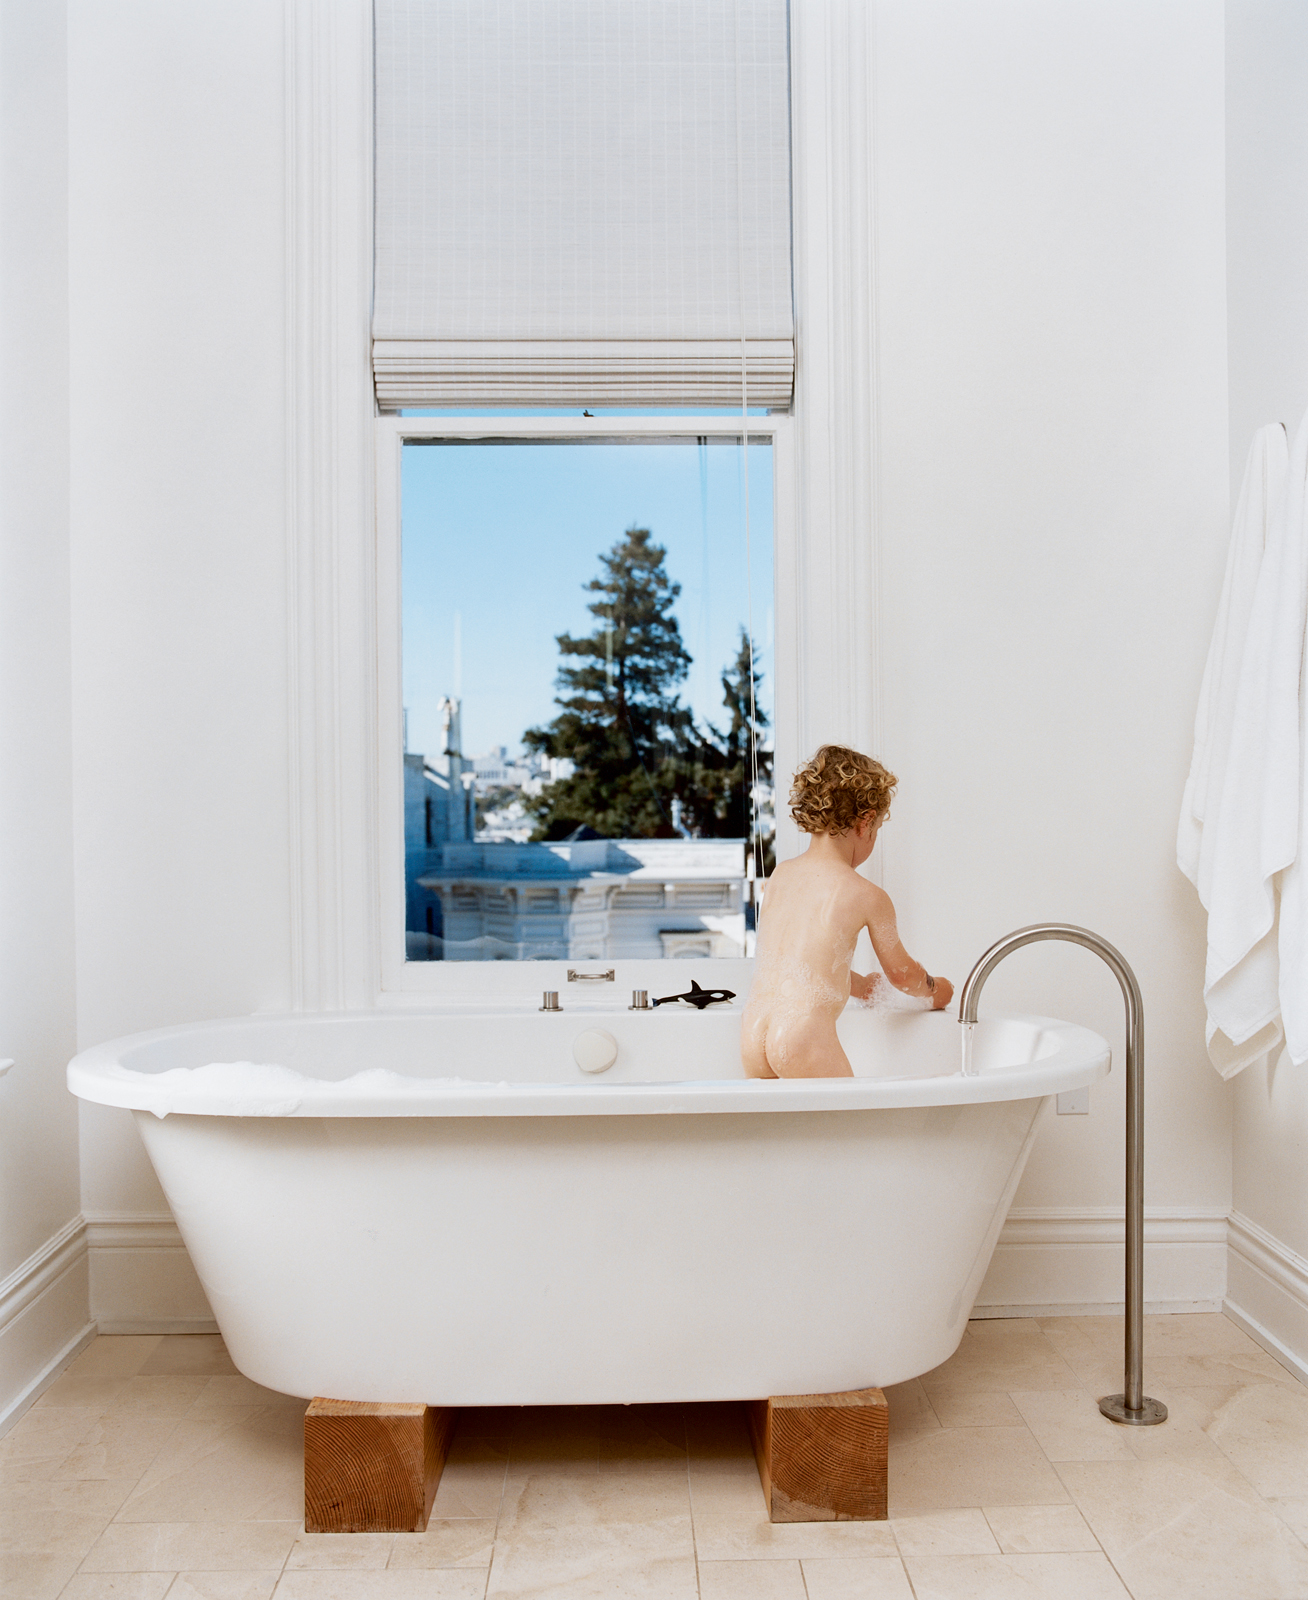 Jonathan Nelson's one wish for the master bathroom was for views from the Zuma tub. He got that and then some, and now three-year-old Jonas (pictured) and his older brother refuse to bathe anywhere else. The stand-alone faucet is by Lefroy Brooks from the